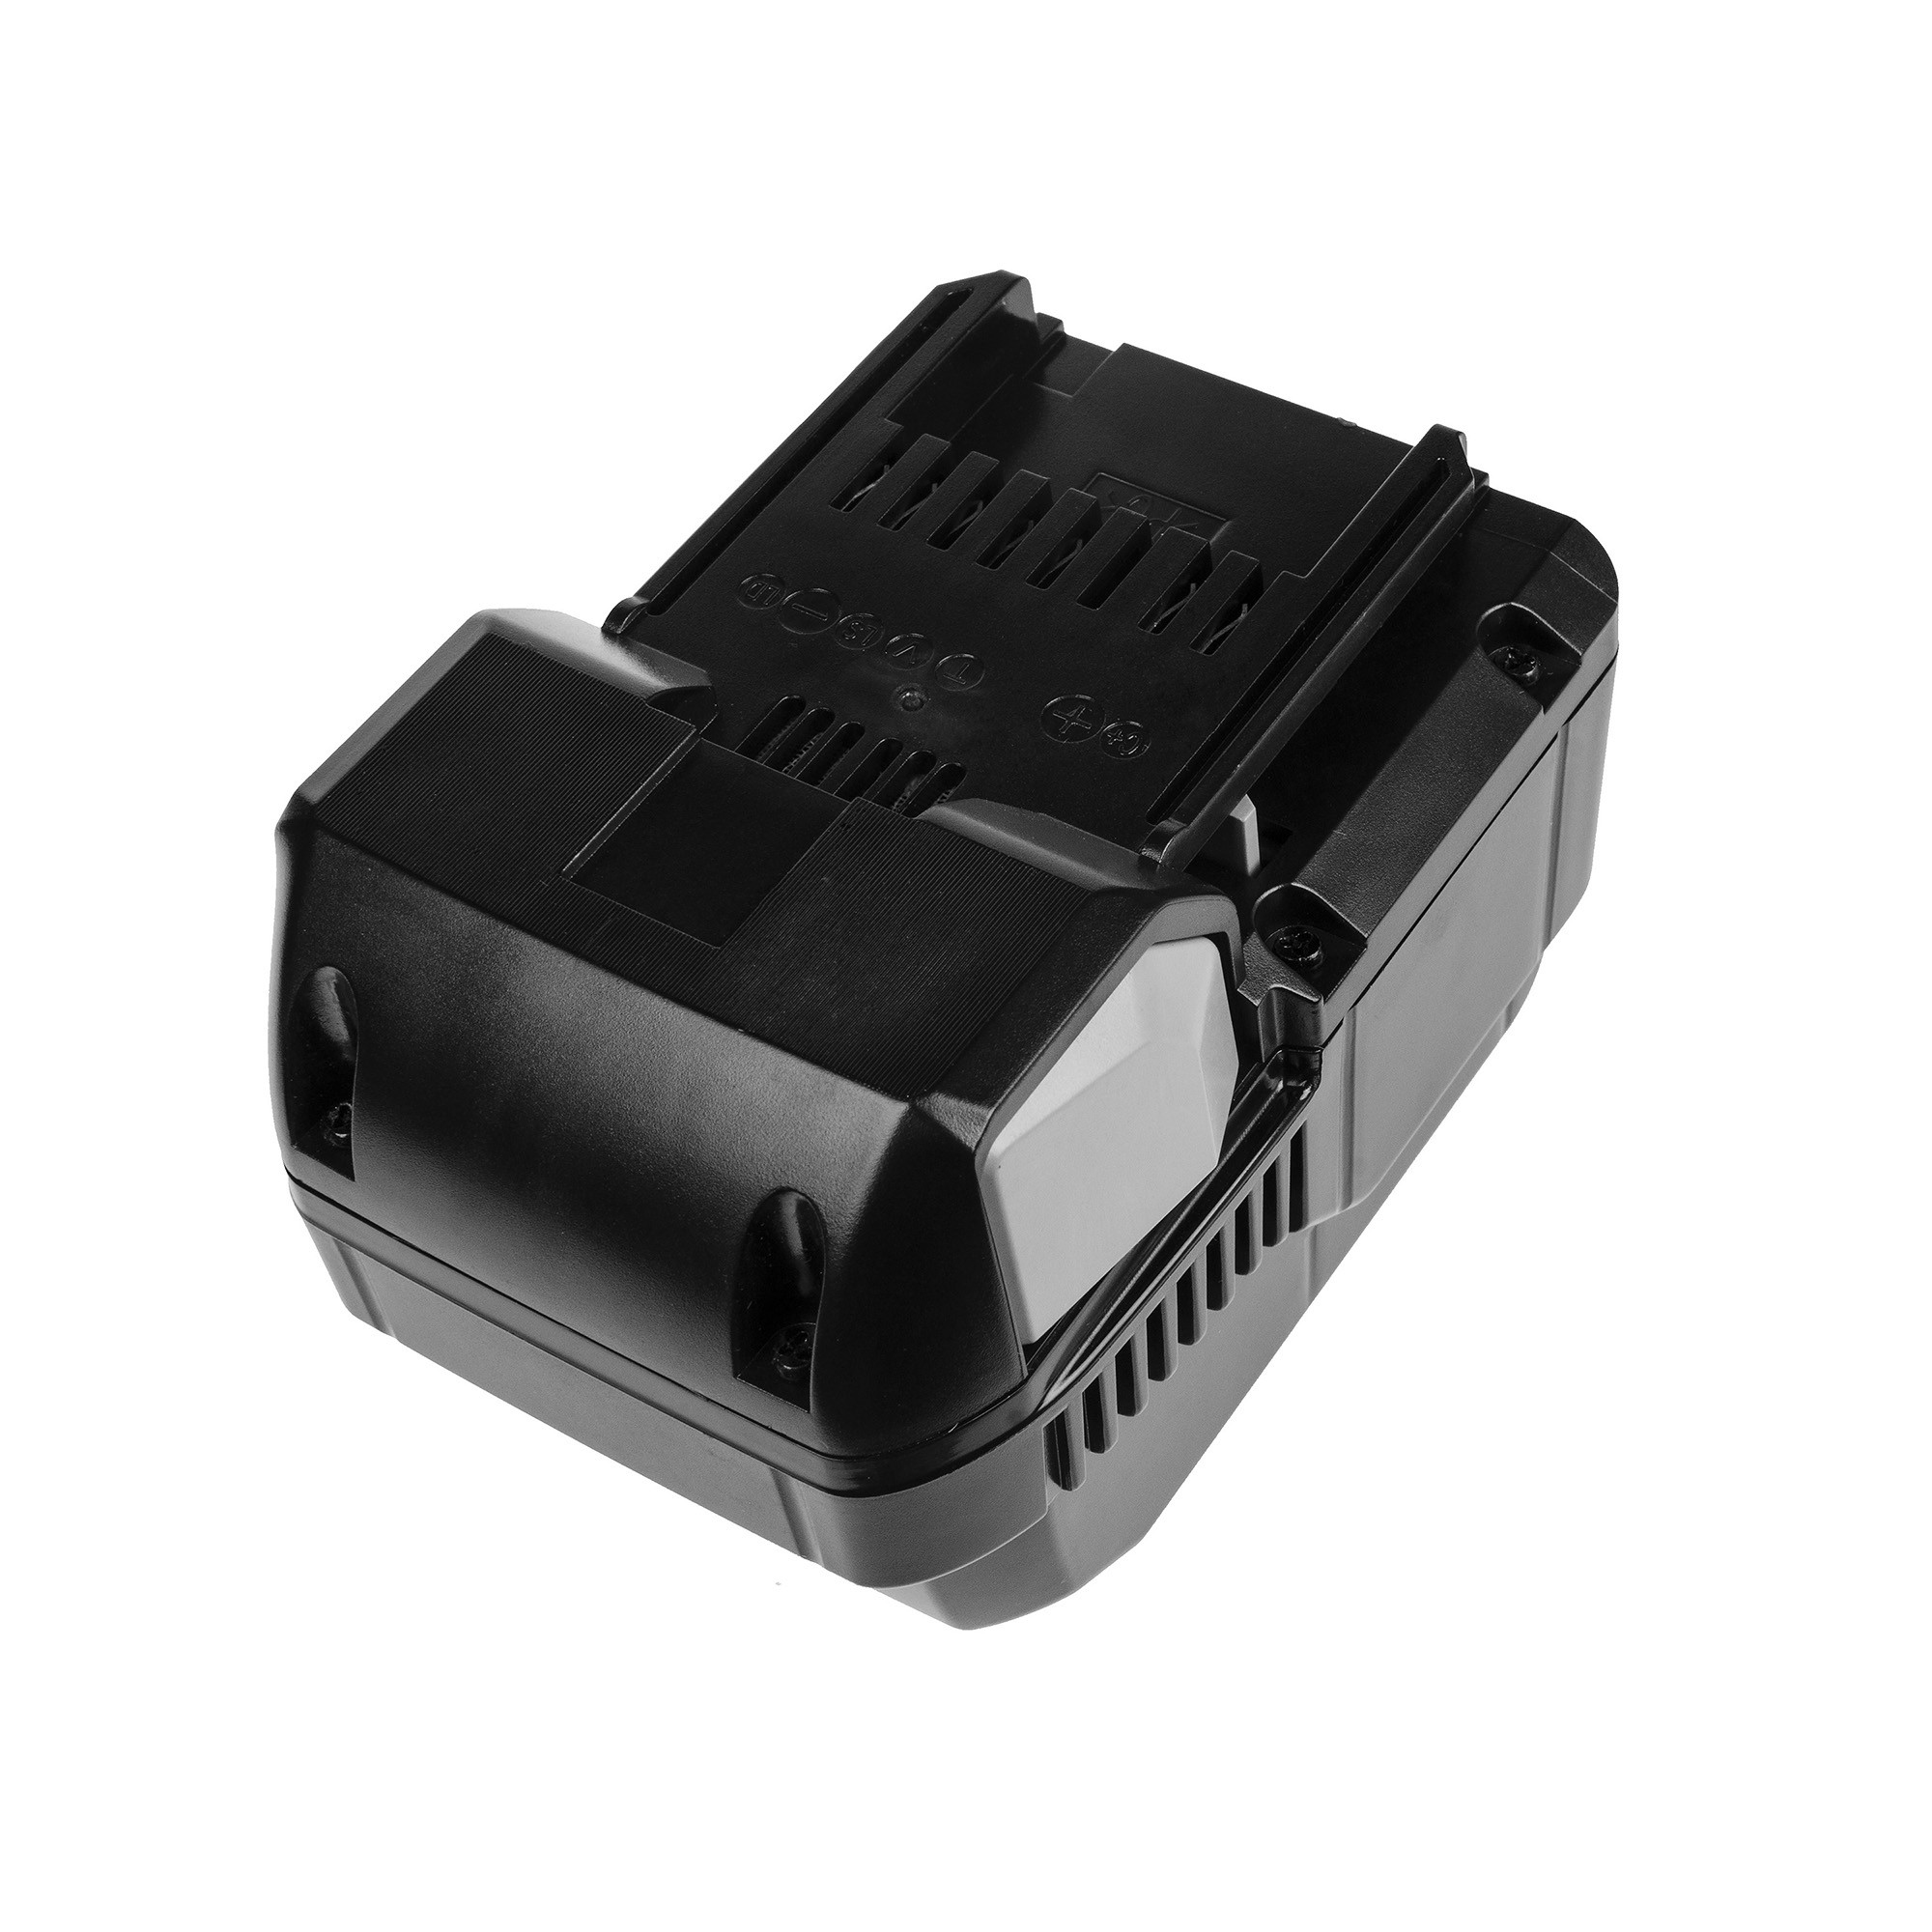 Green Cell Power Tool Battery 25.2V 3Ah BSL 2530 for Hitachi DH25DAL DH25DL